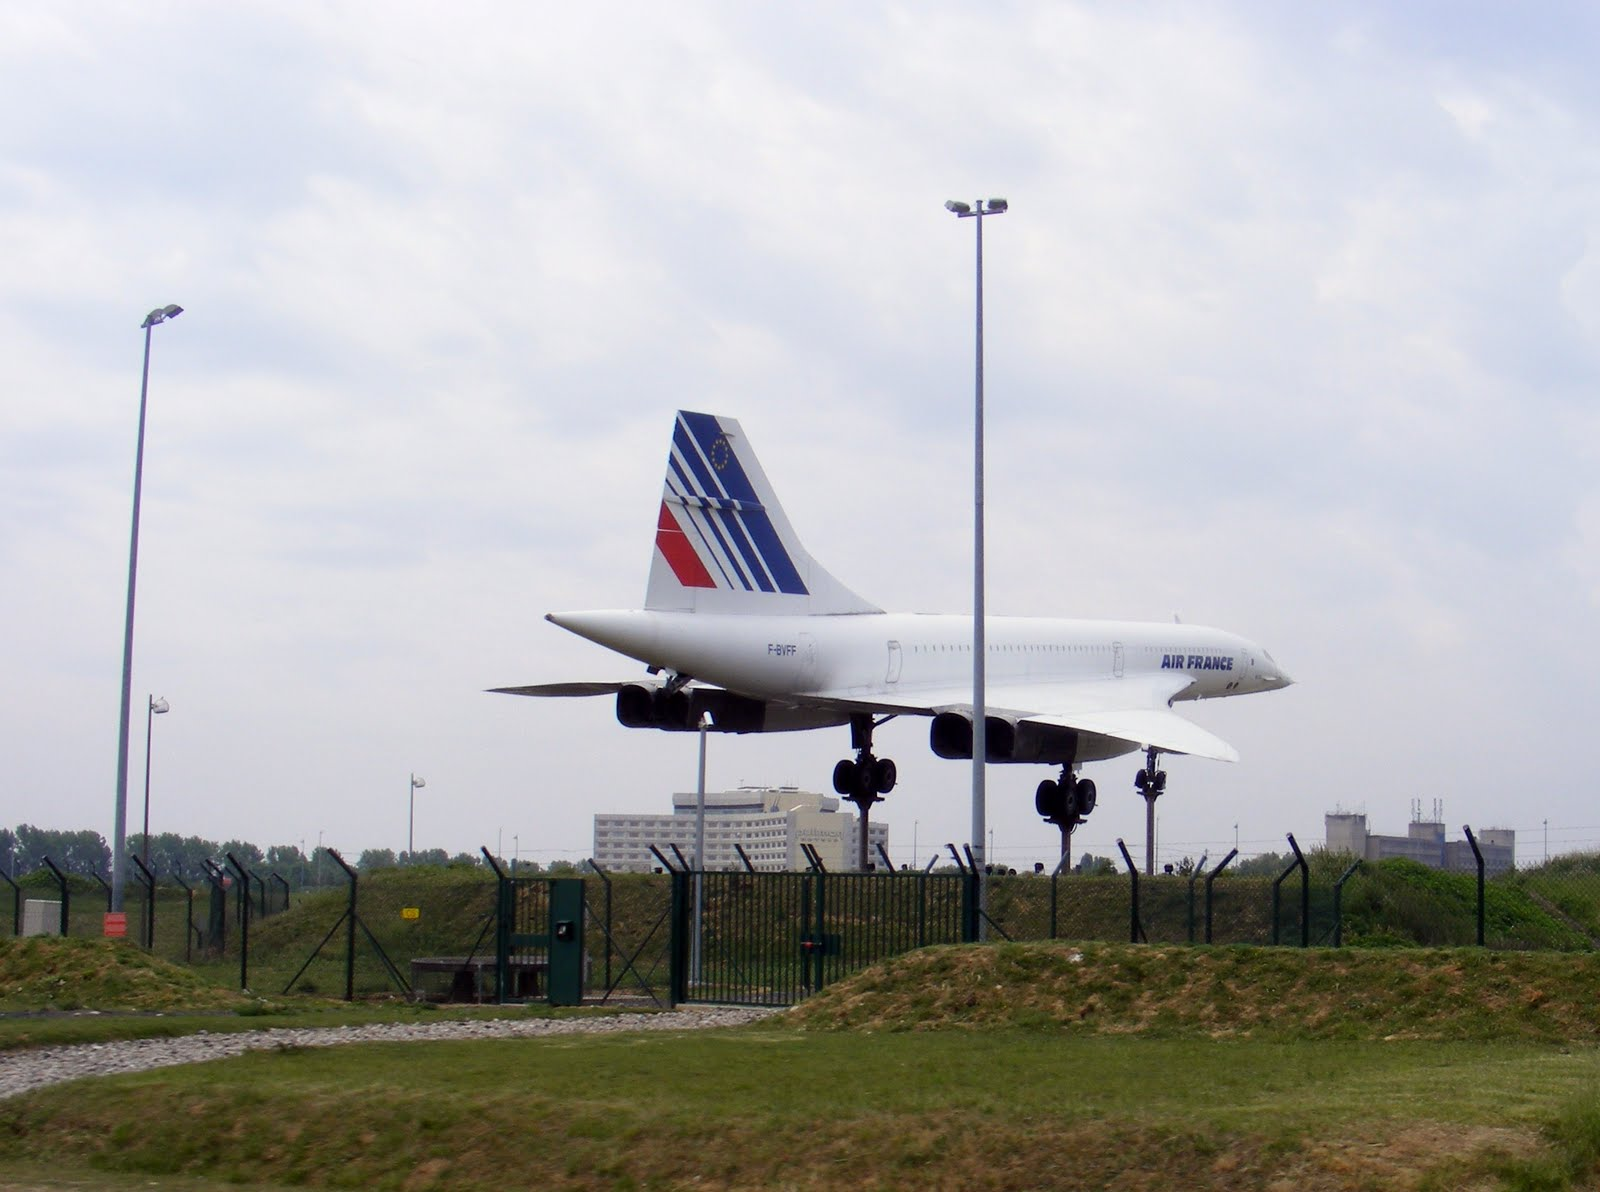 Sandy 39 s france the stuff that dreams are made of concorde for Flights to paris today